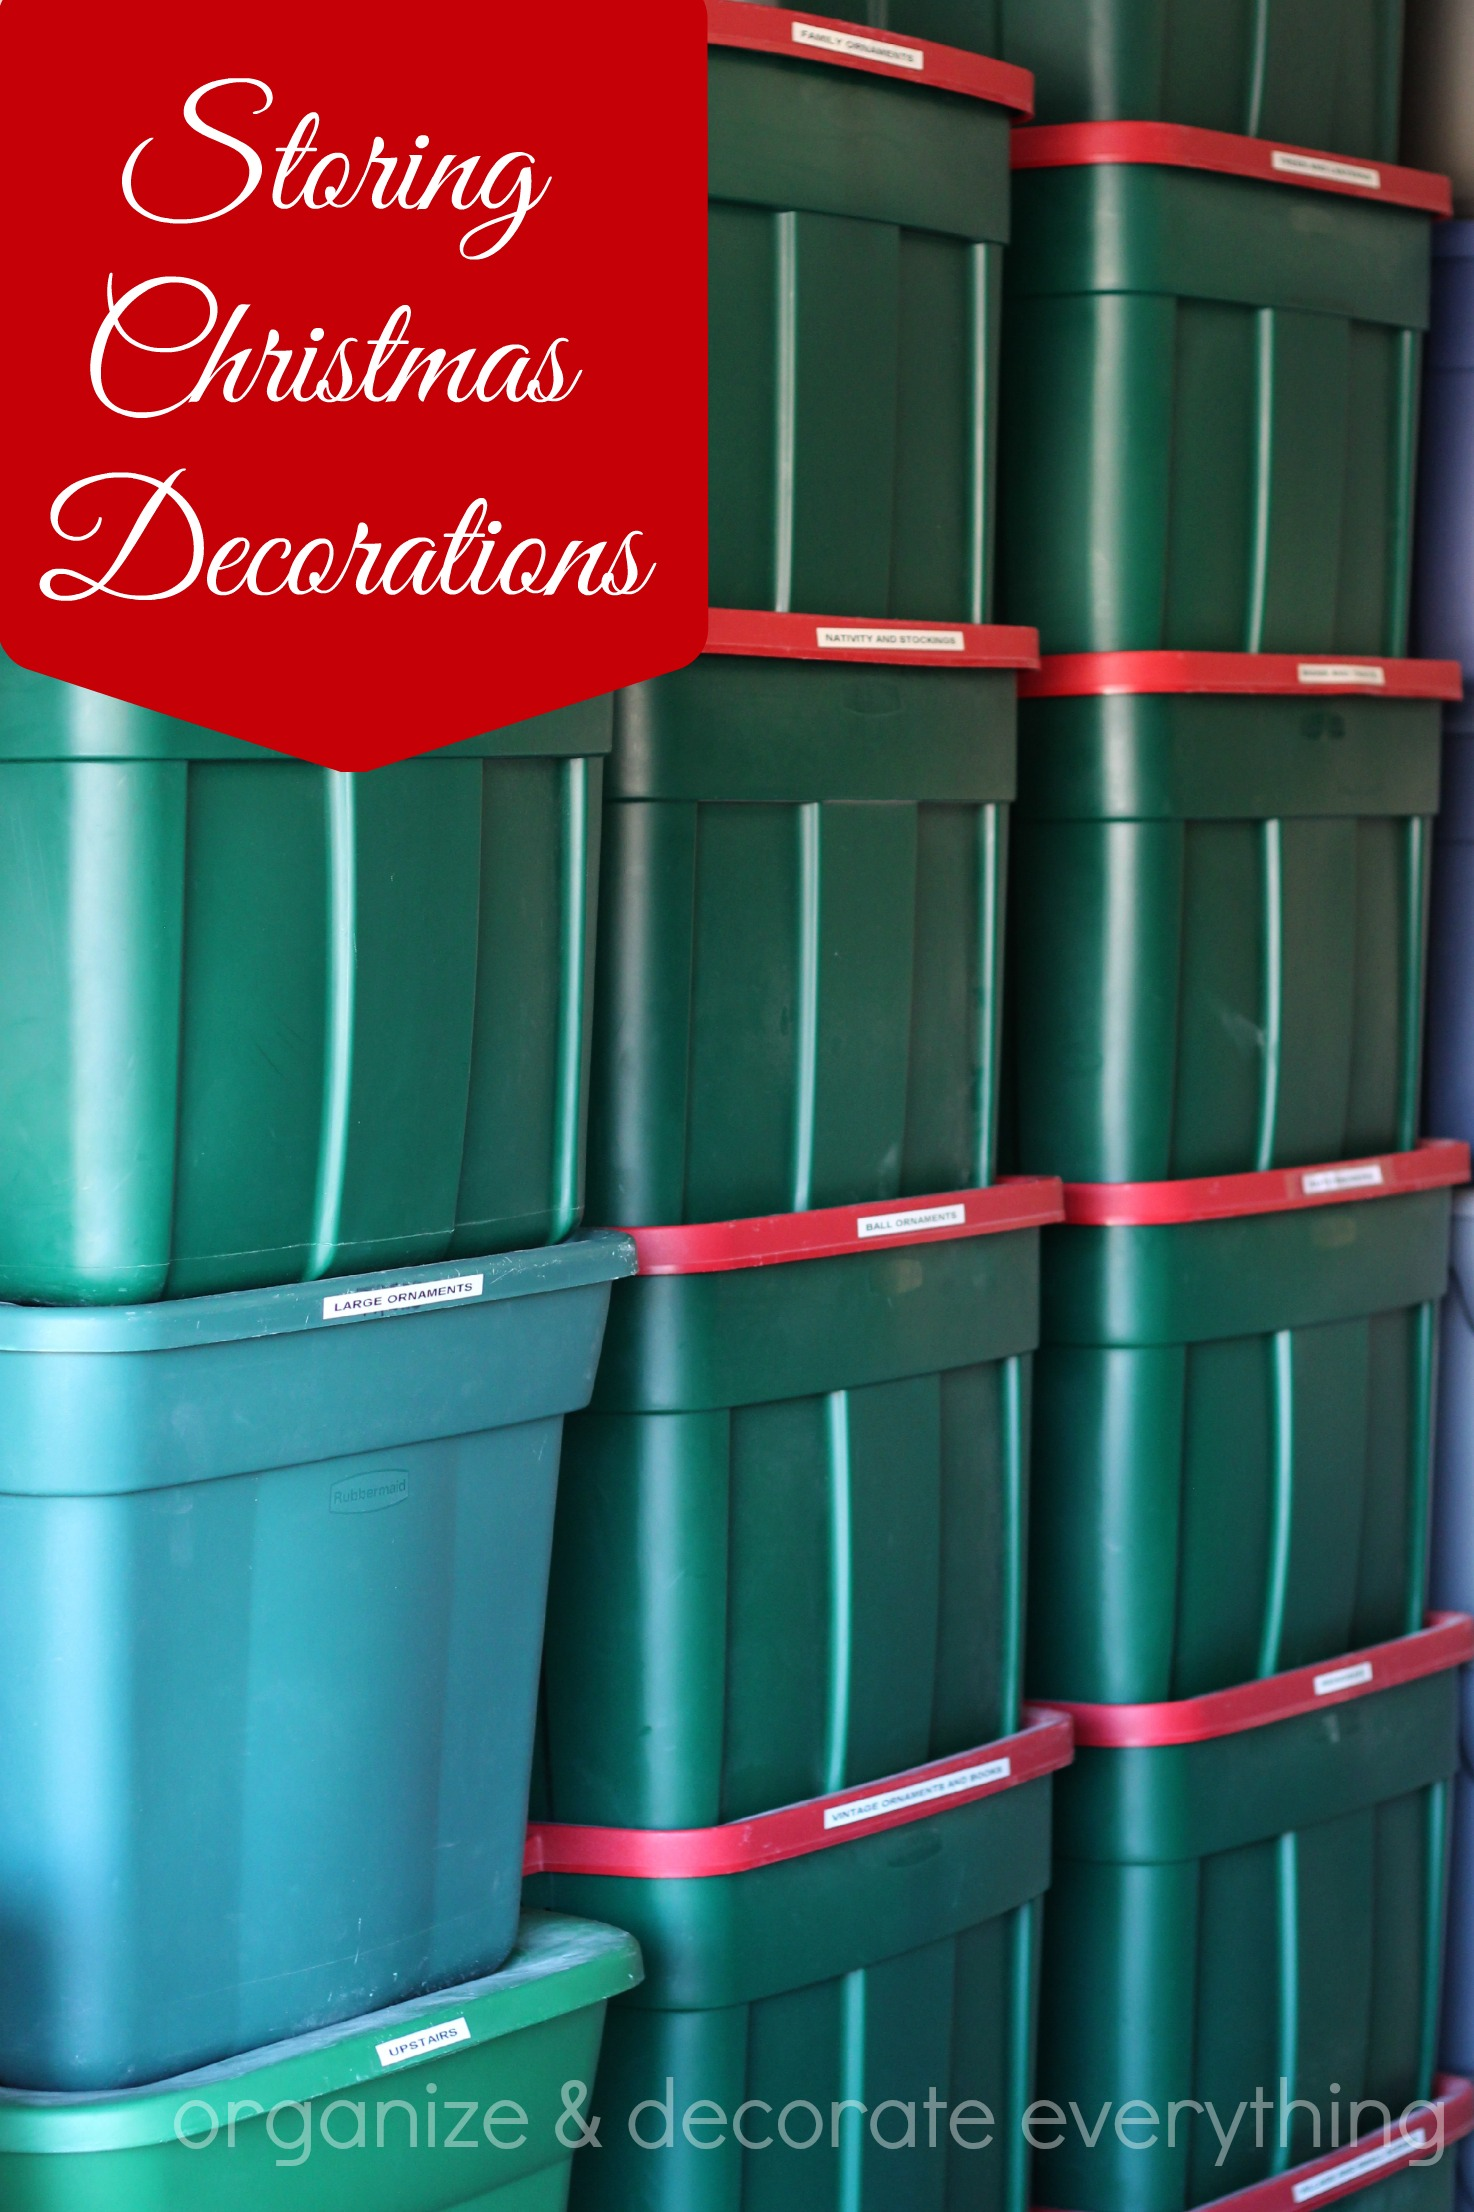 storing christmas decorations - How To Organize Christmas Decorations